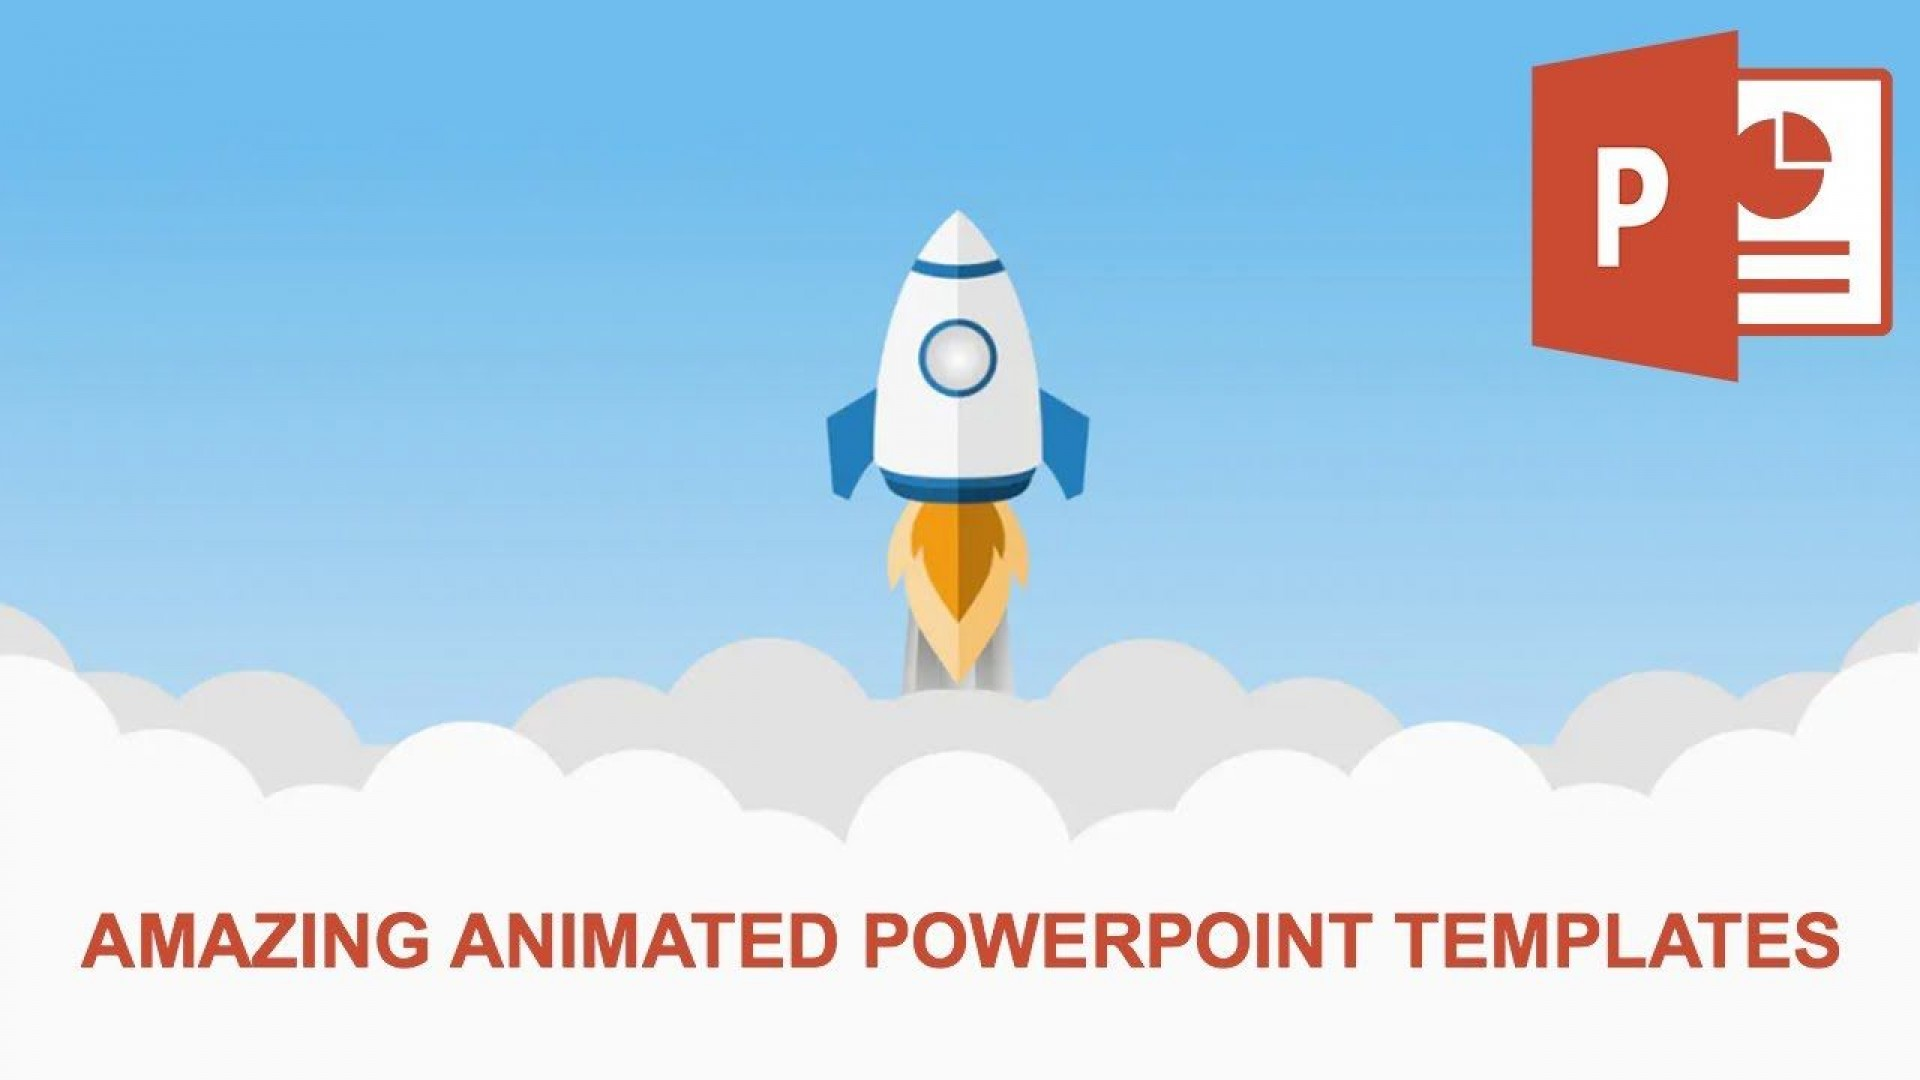 007 Stupendou 3d Animated Cartoon Powerpoint Template Free Download Example 1920